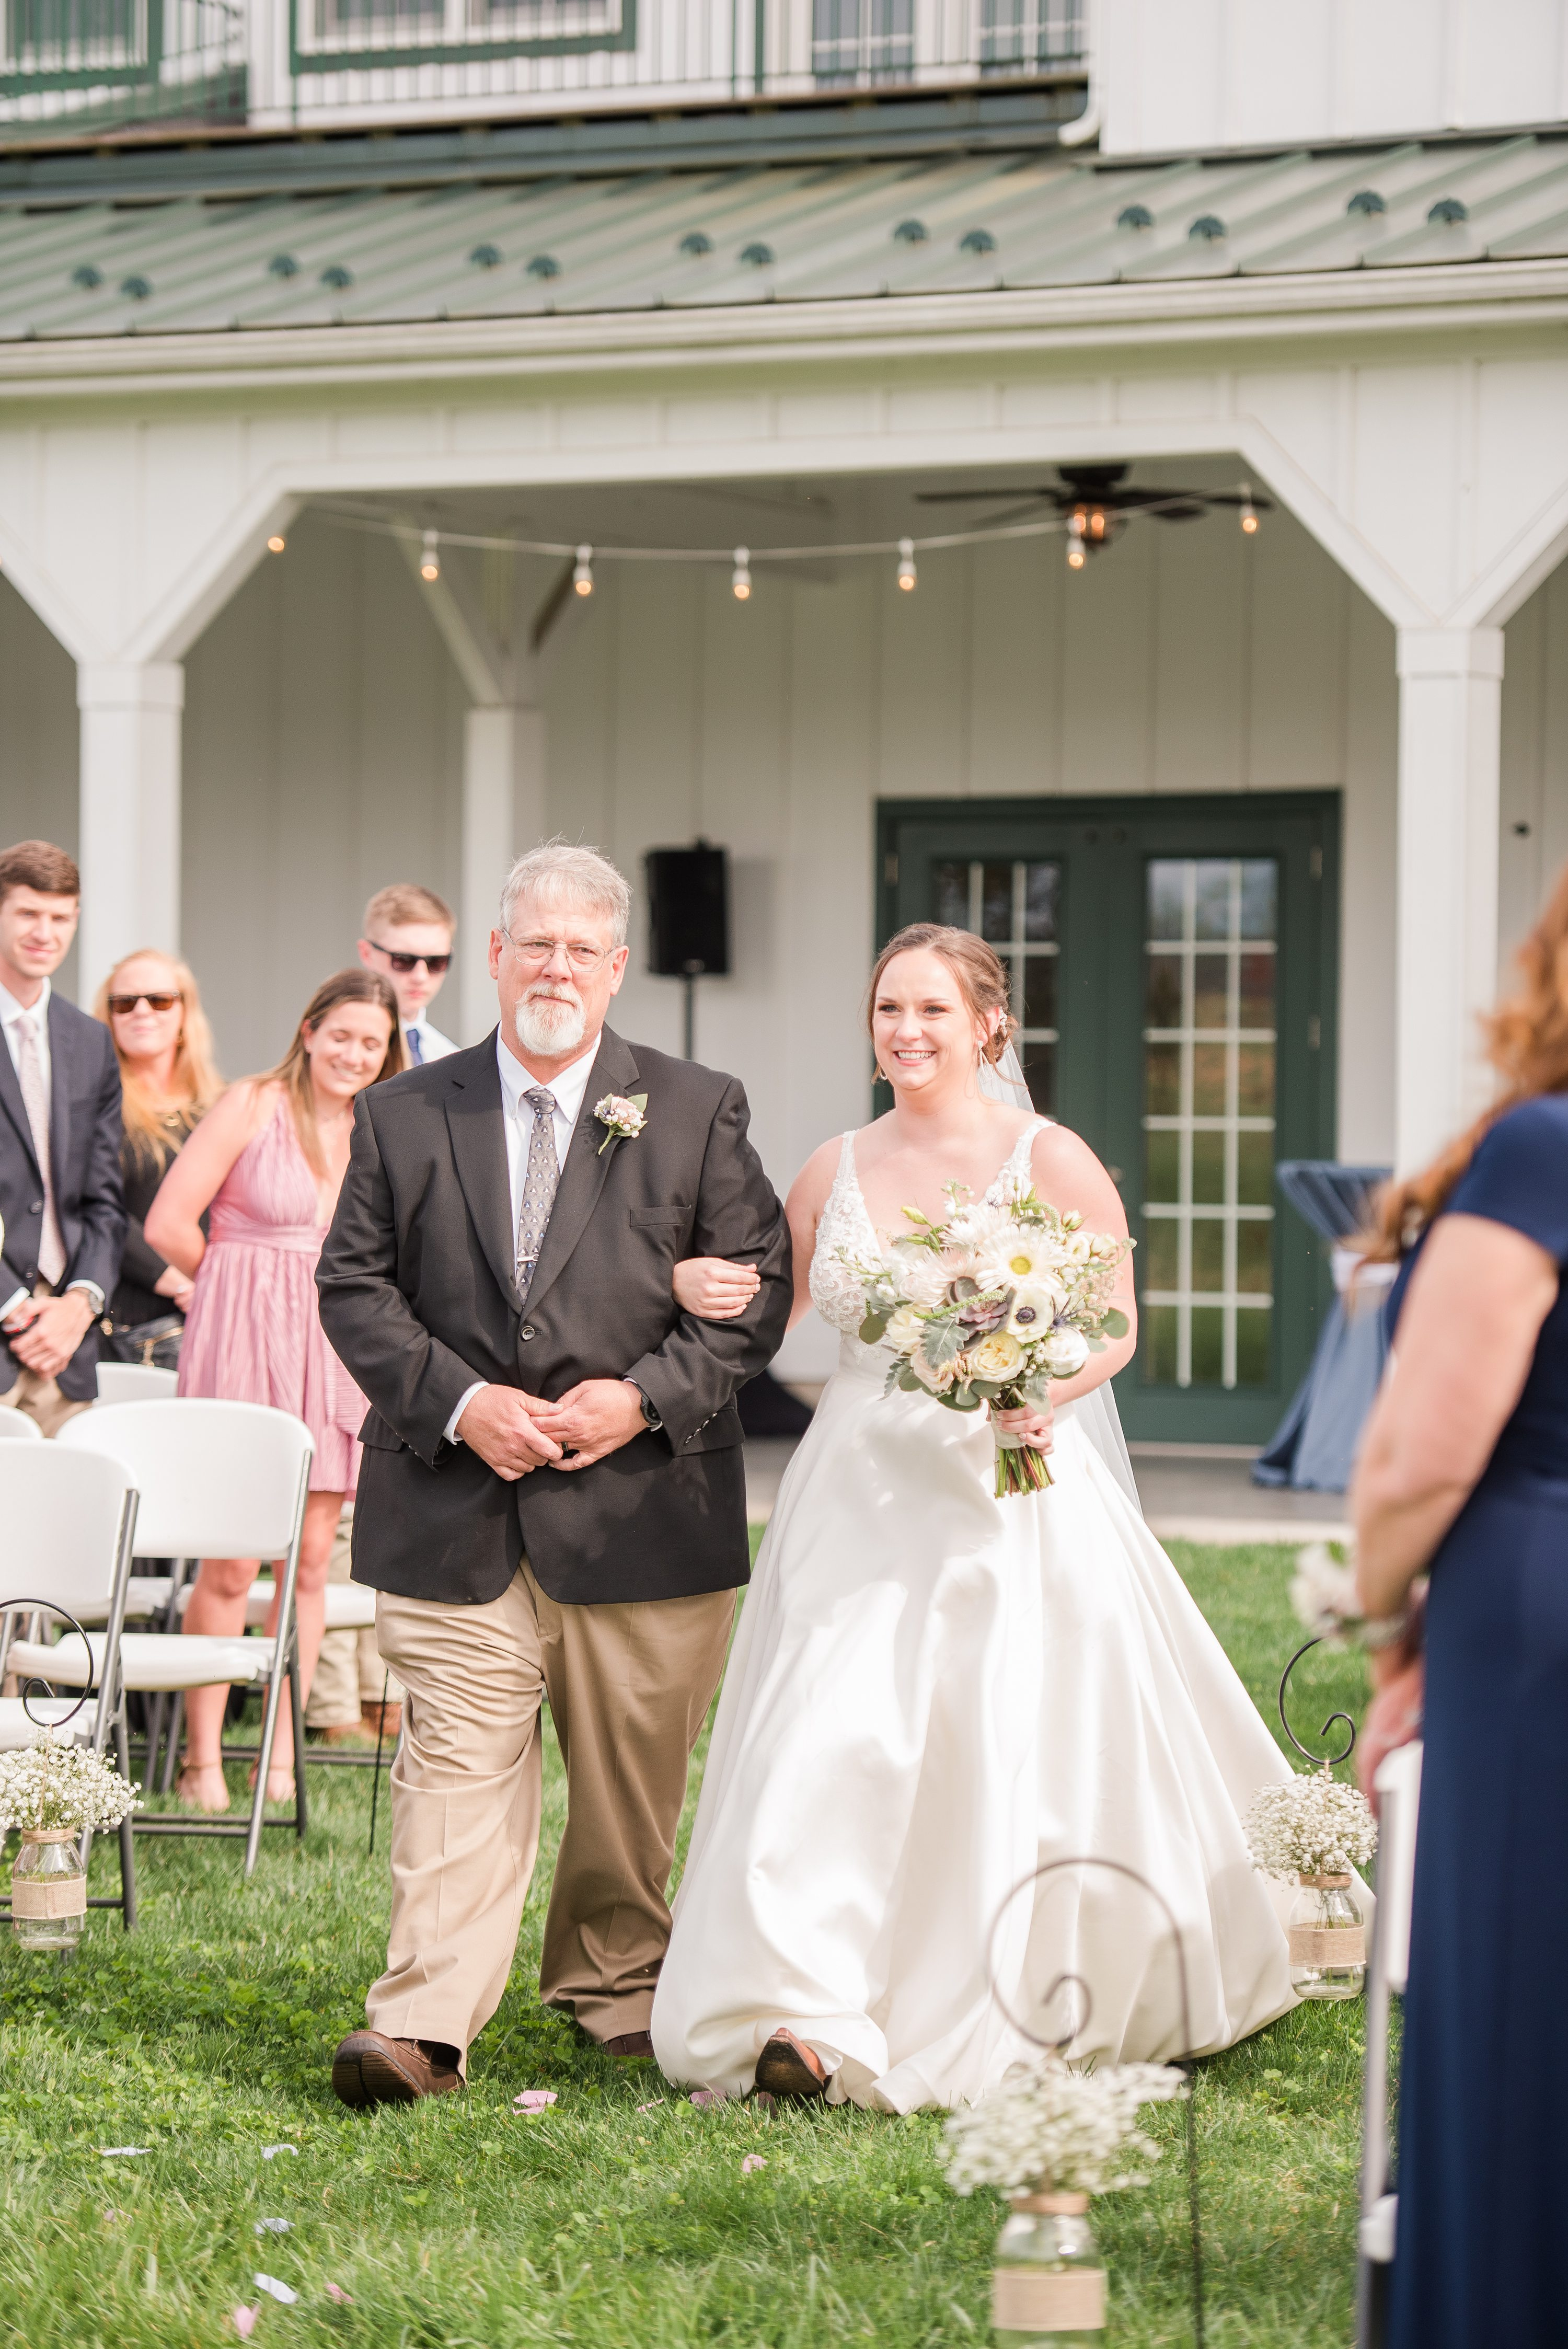 Wedding,Spring,father of bride,walking down aisle